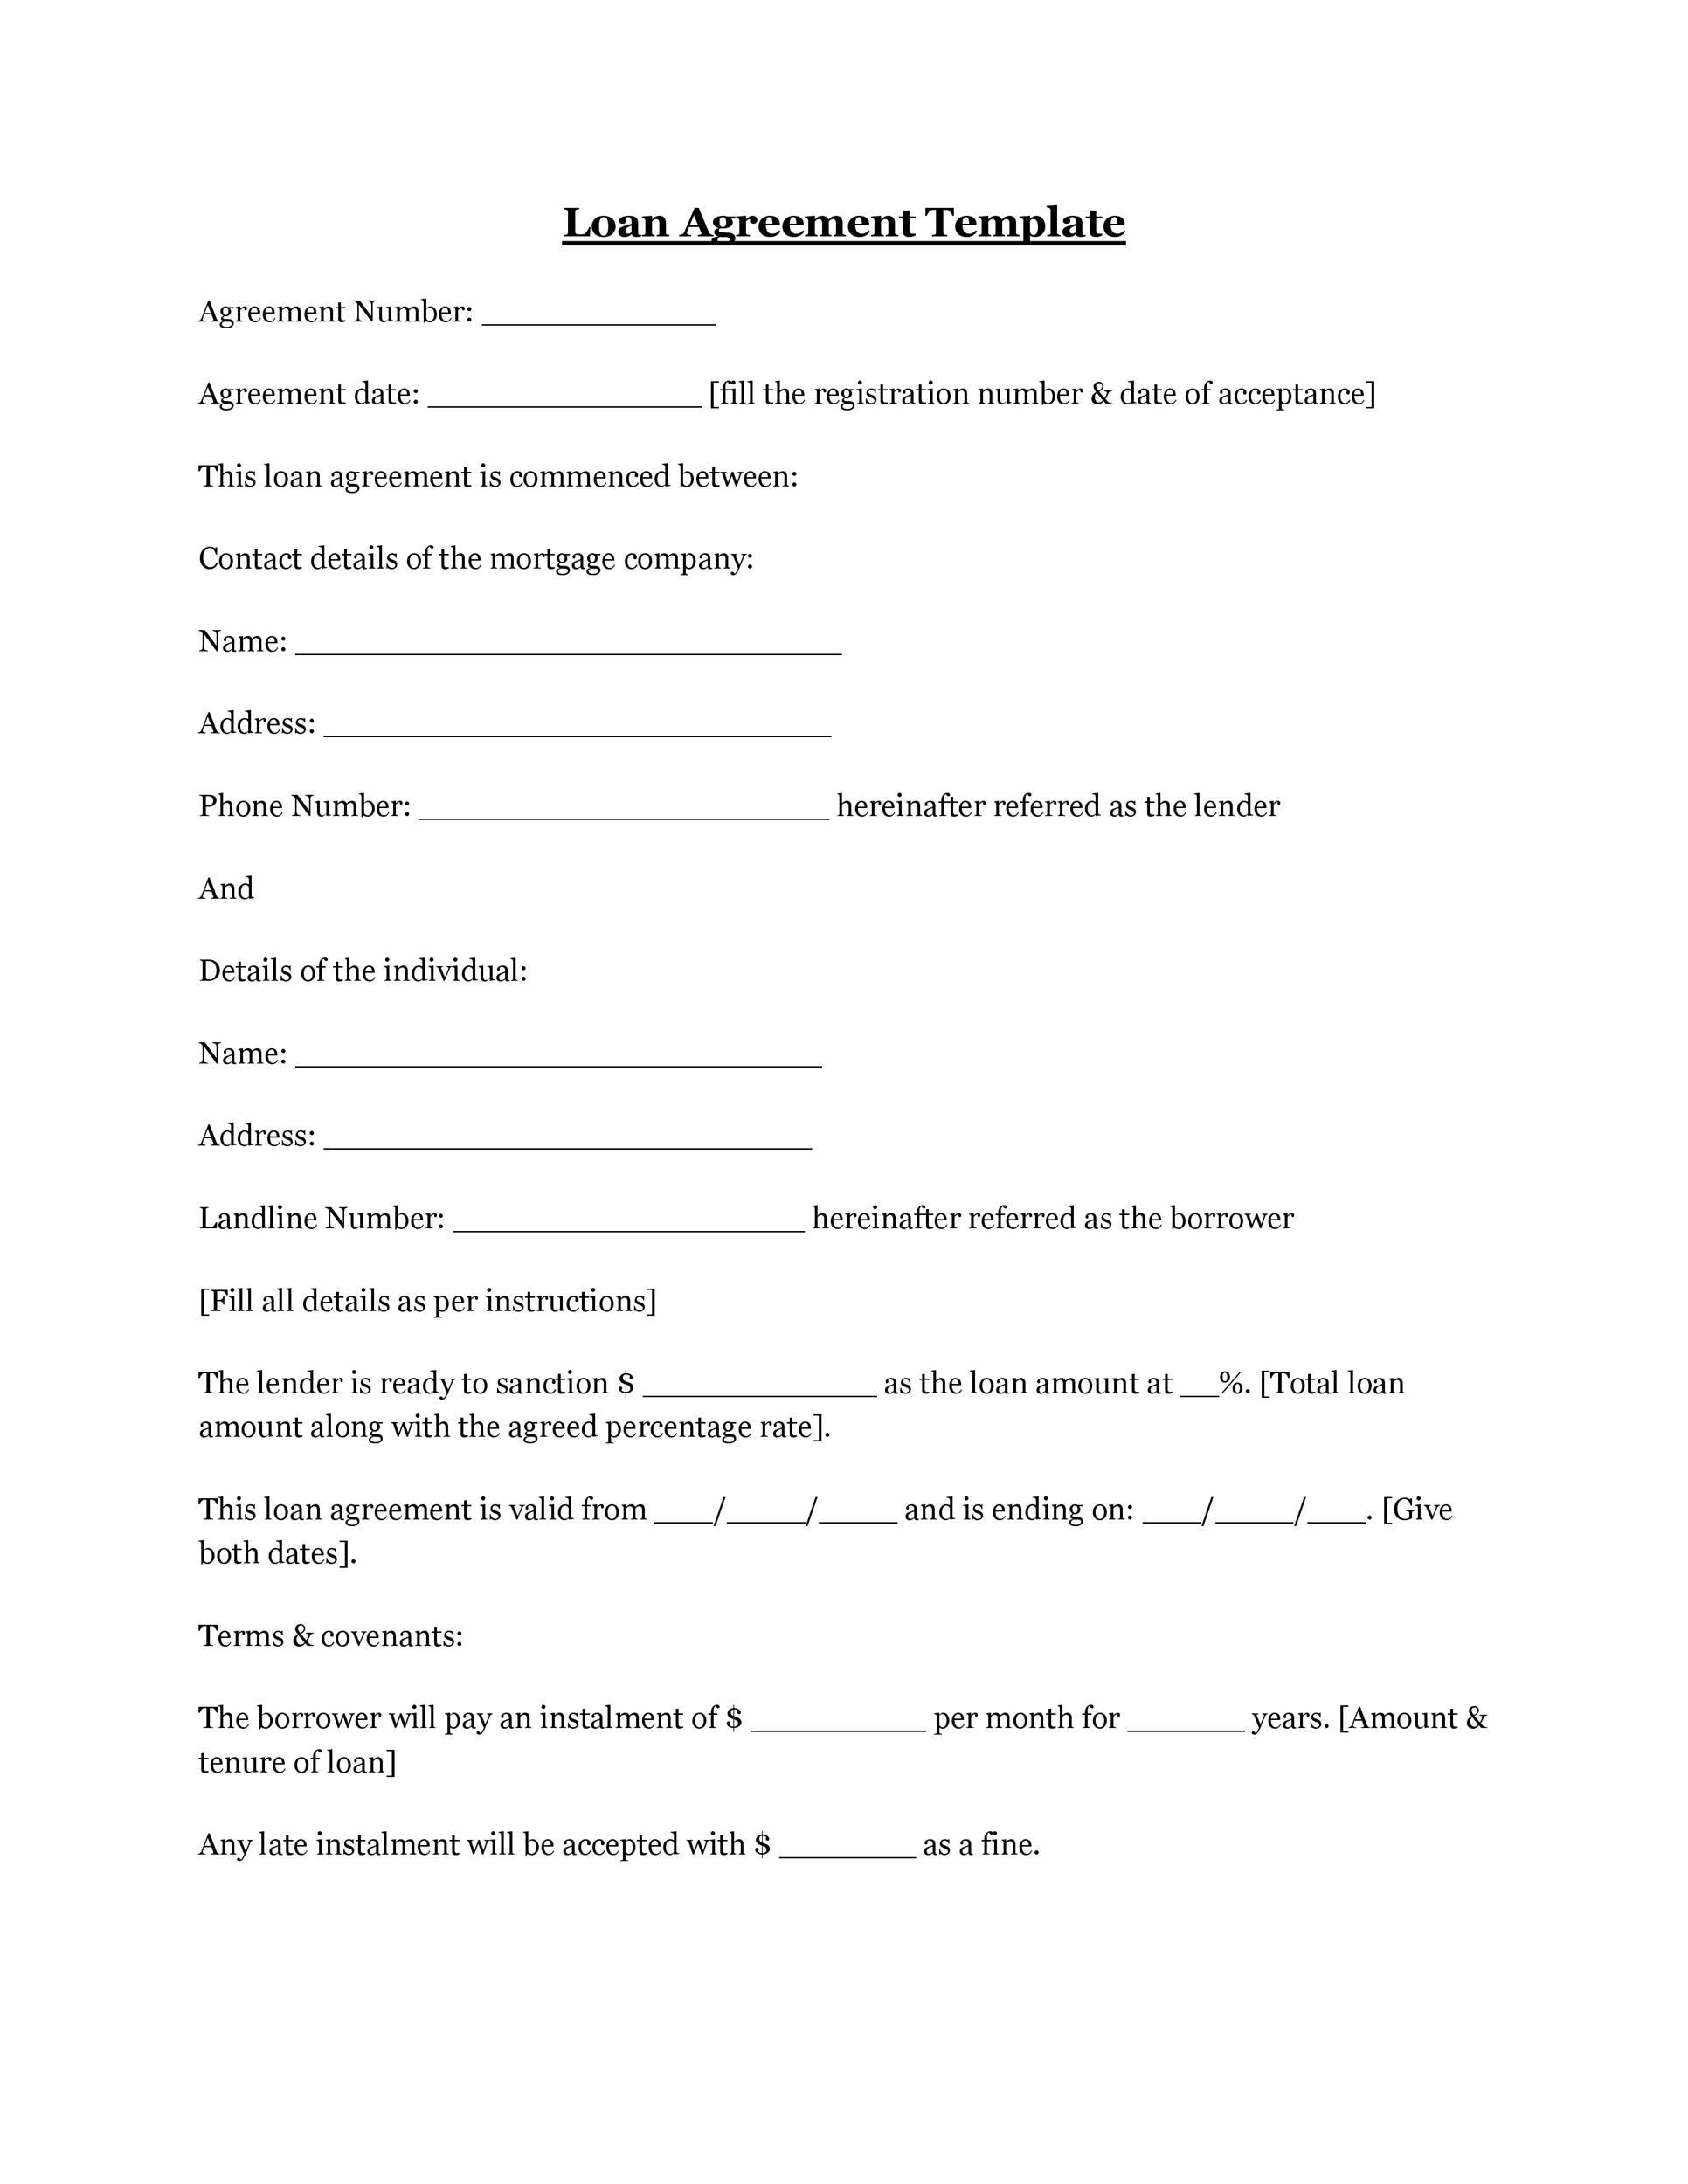 Printable Loan Agreement Template 05  Free Loan Document Template